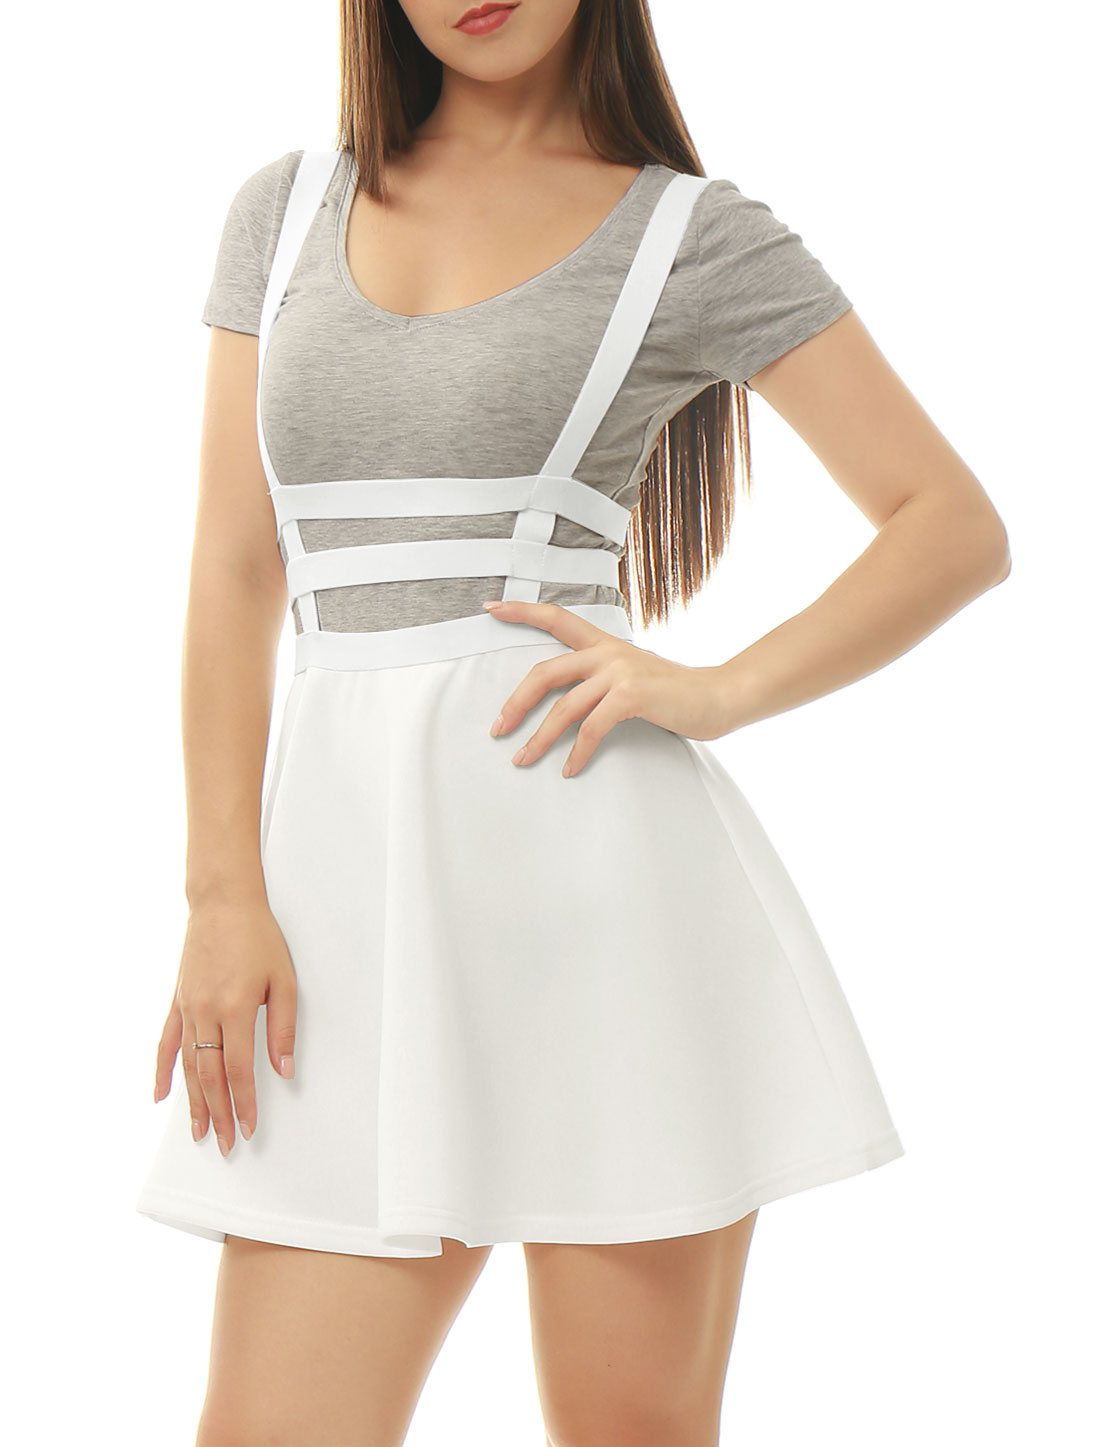 Women Elastic Waist Cut Out A Line Suspender Skirt White S